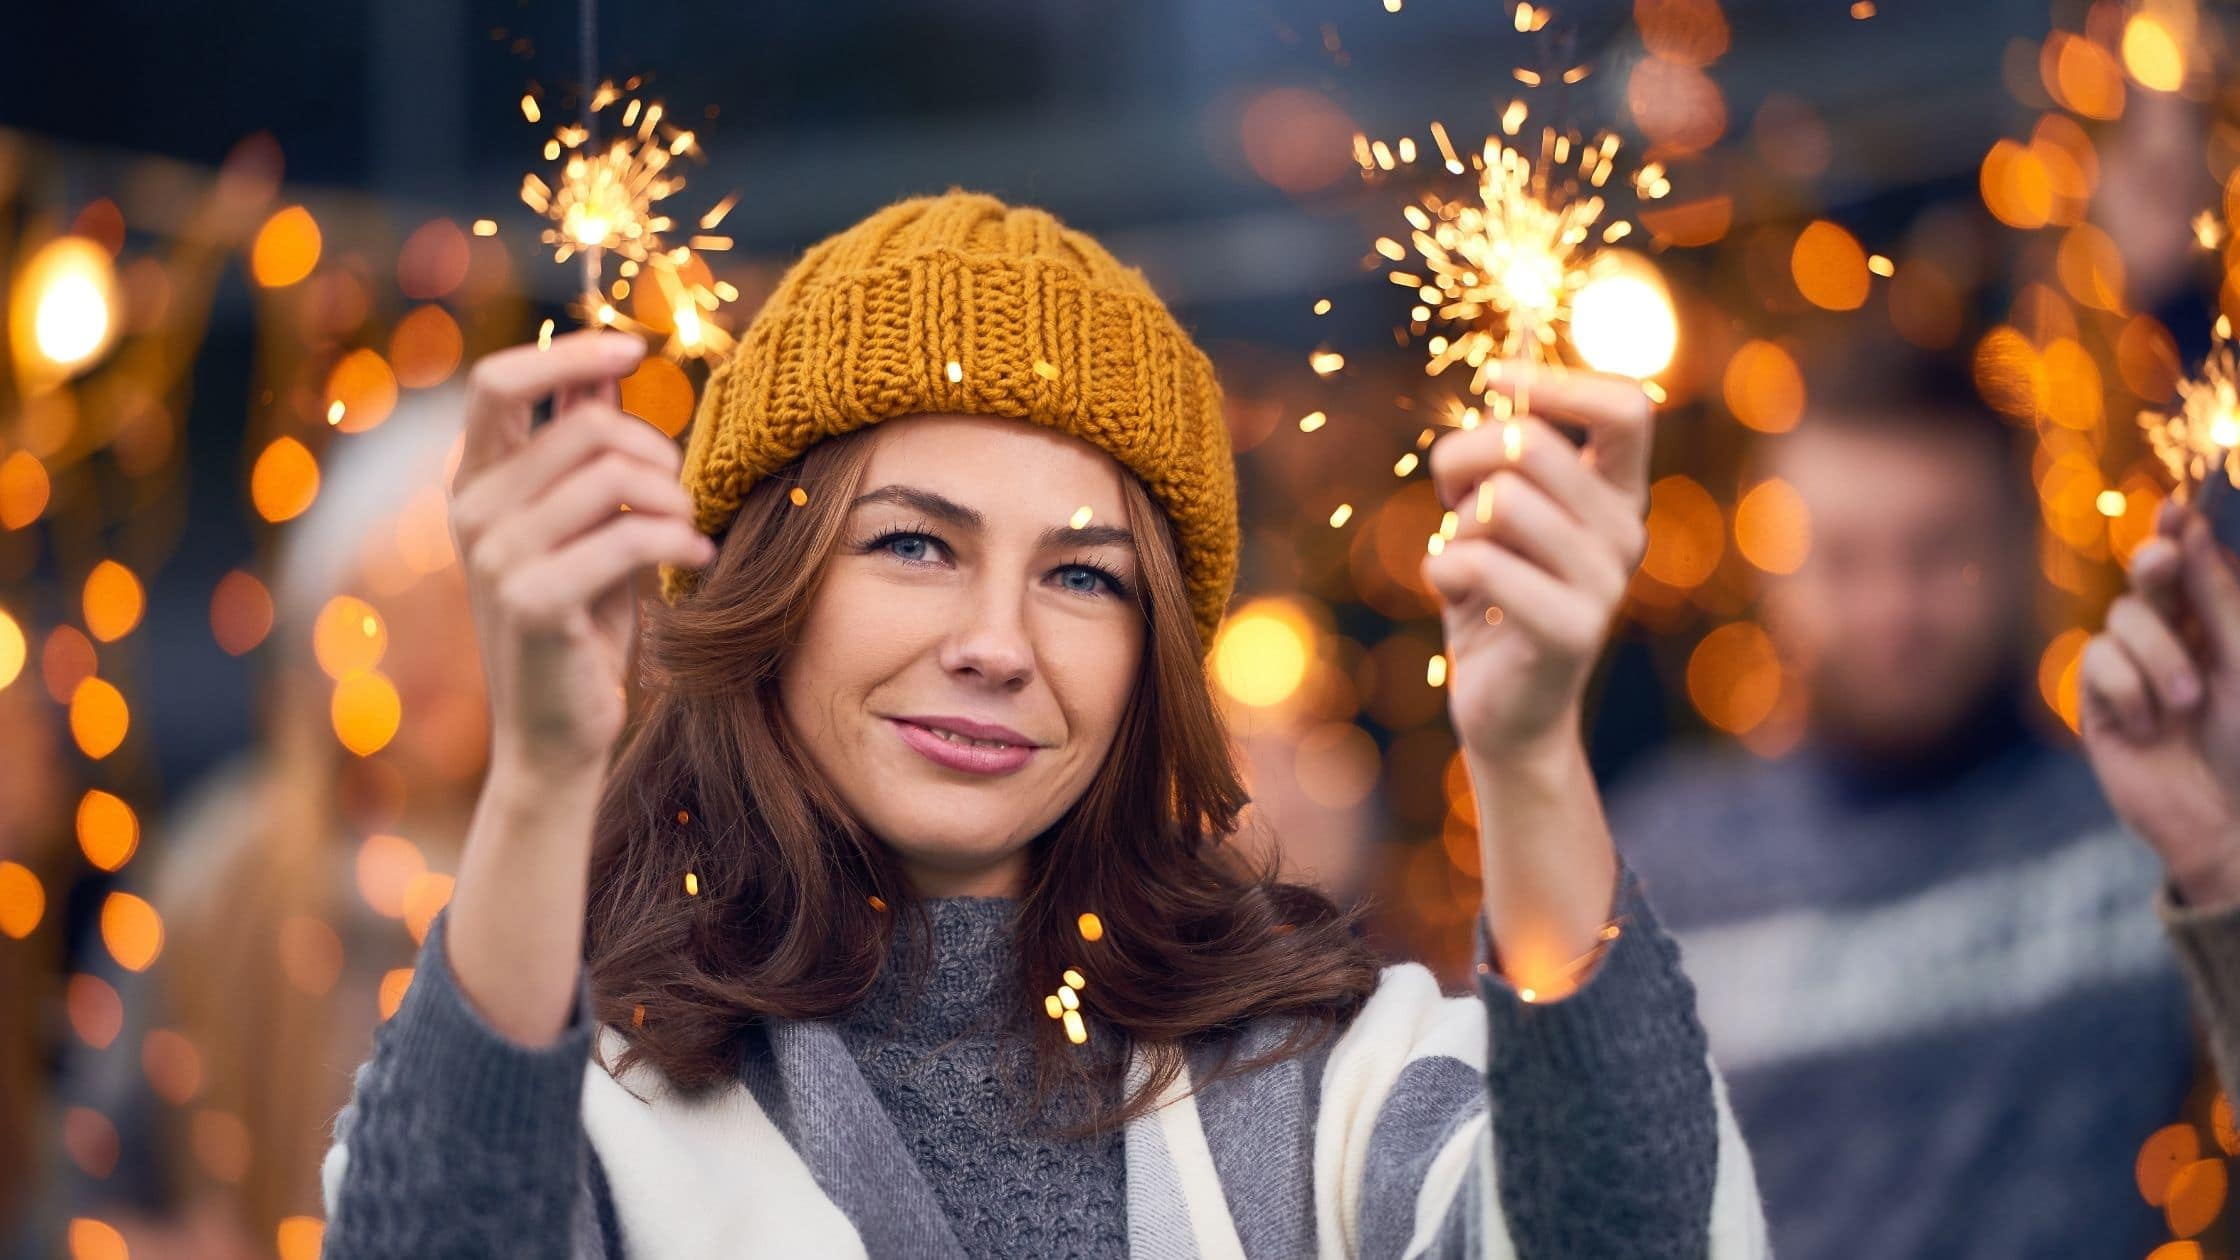 Infuse the New Year with Potential and Opportunity